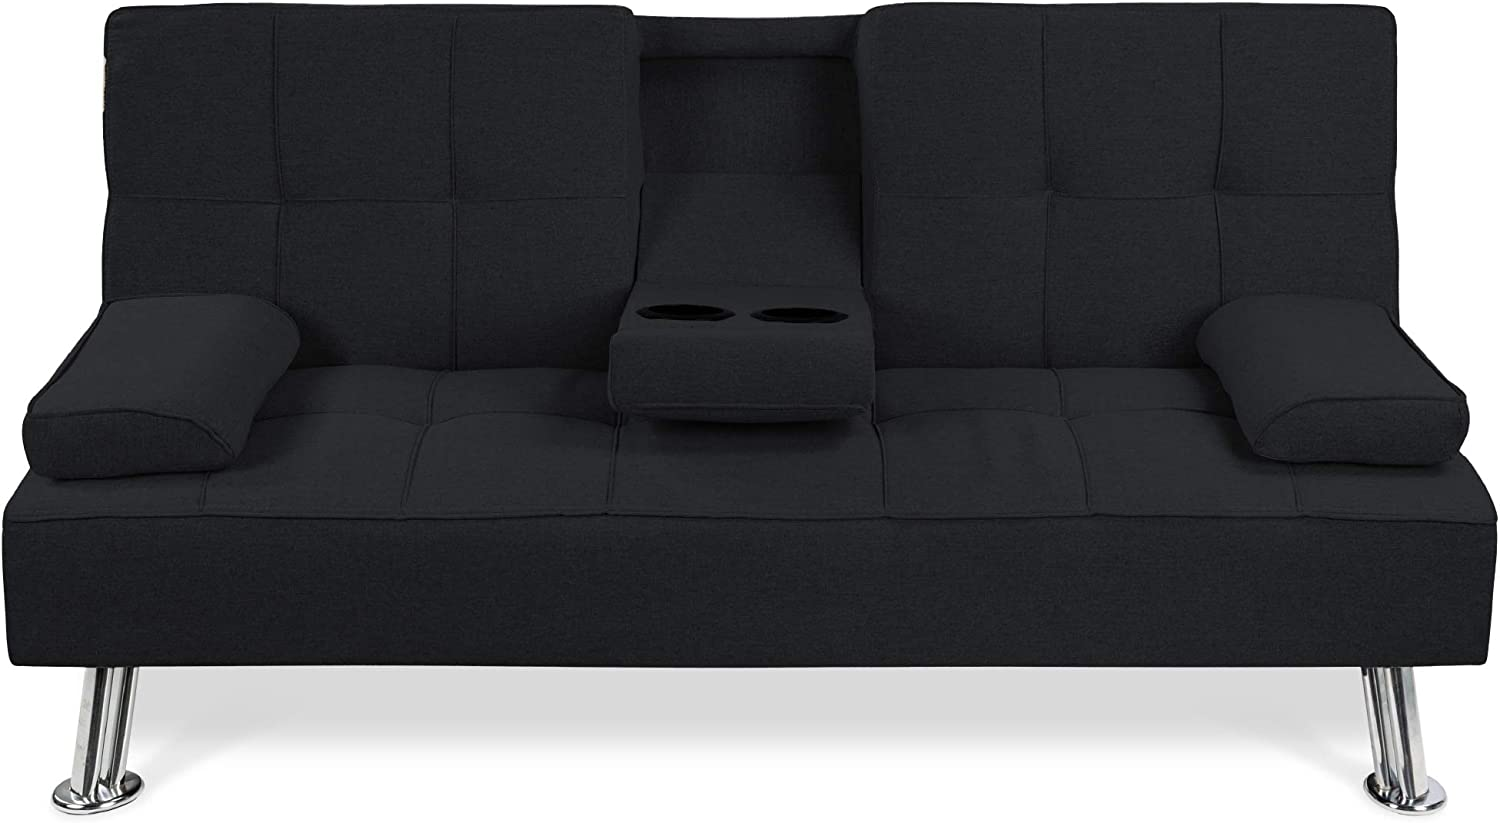 Best Choice Products Linen Upholstered Modern Convertible Folding Futon Sofa Bed w/Removable Armrests, Metal Legs, 2 Cupholders - Black